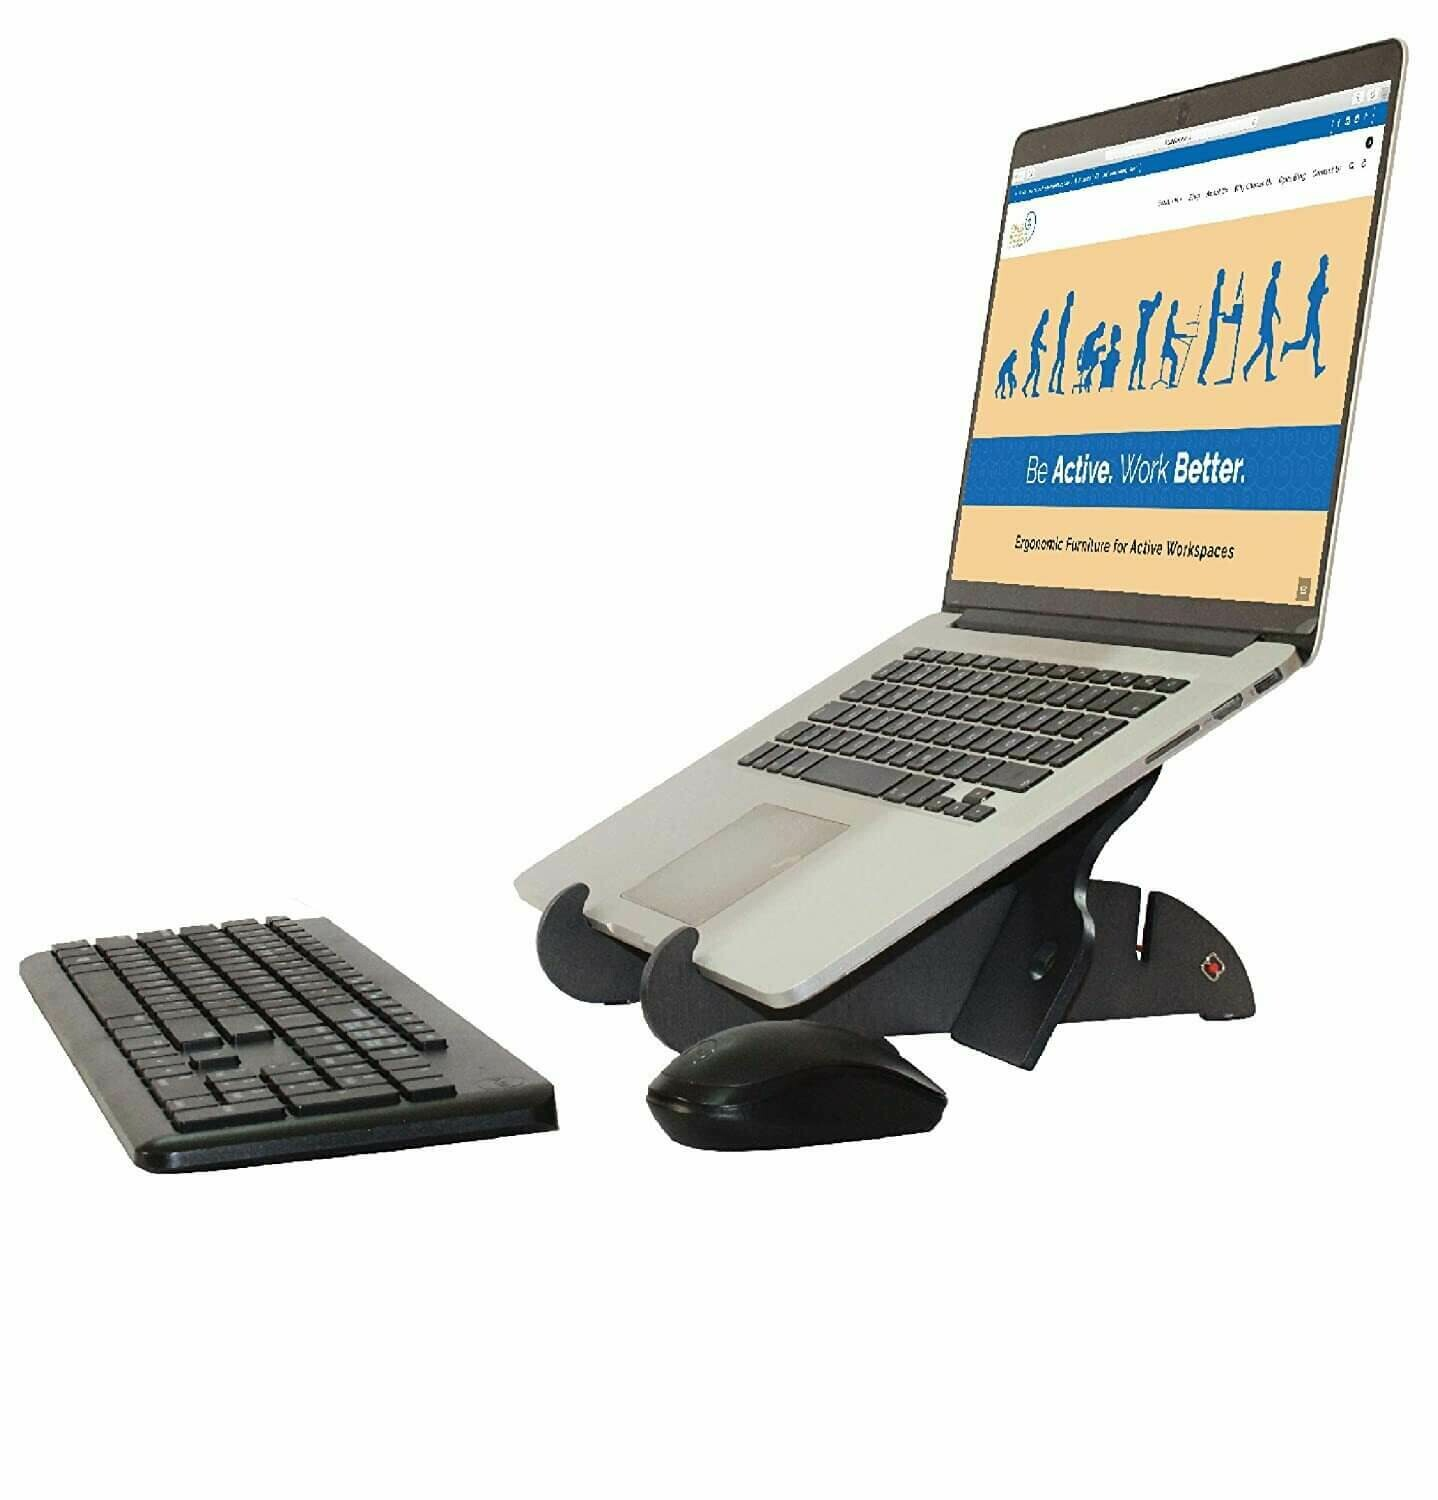 Opus AriseGo Portable Ergonomic Stand for laptops, tablets, and mobiles